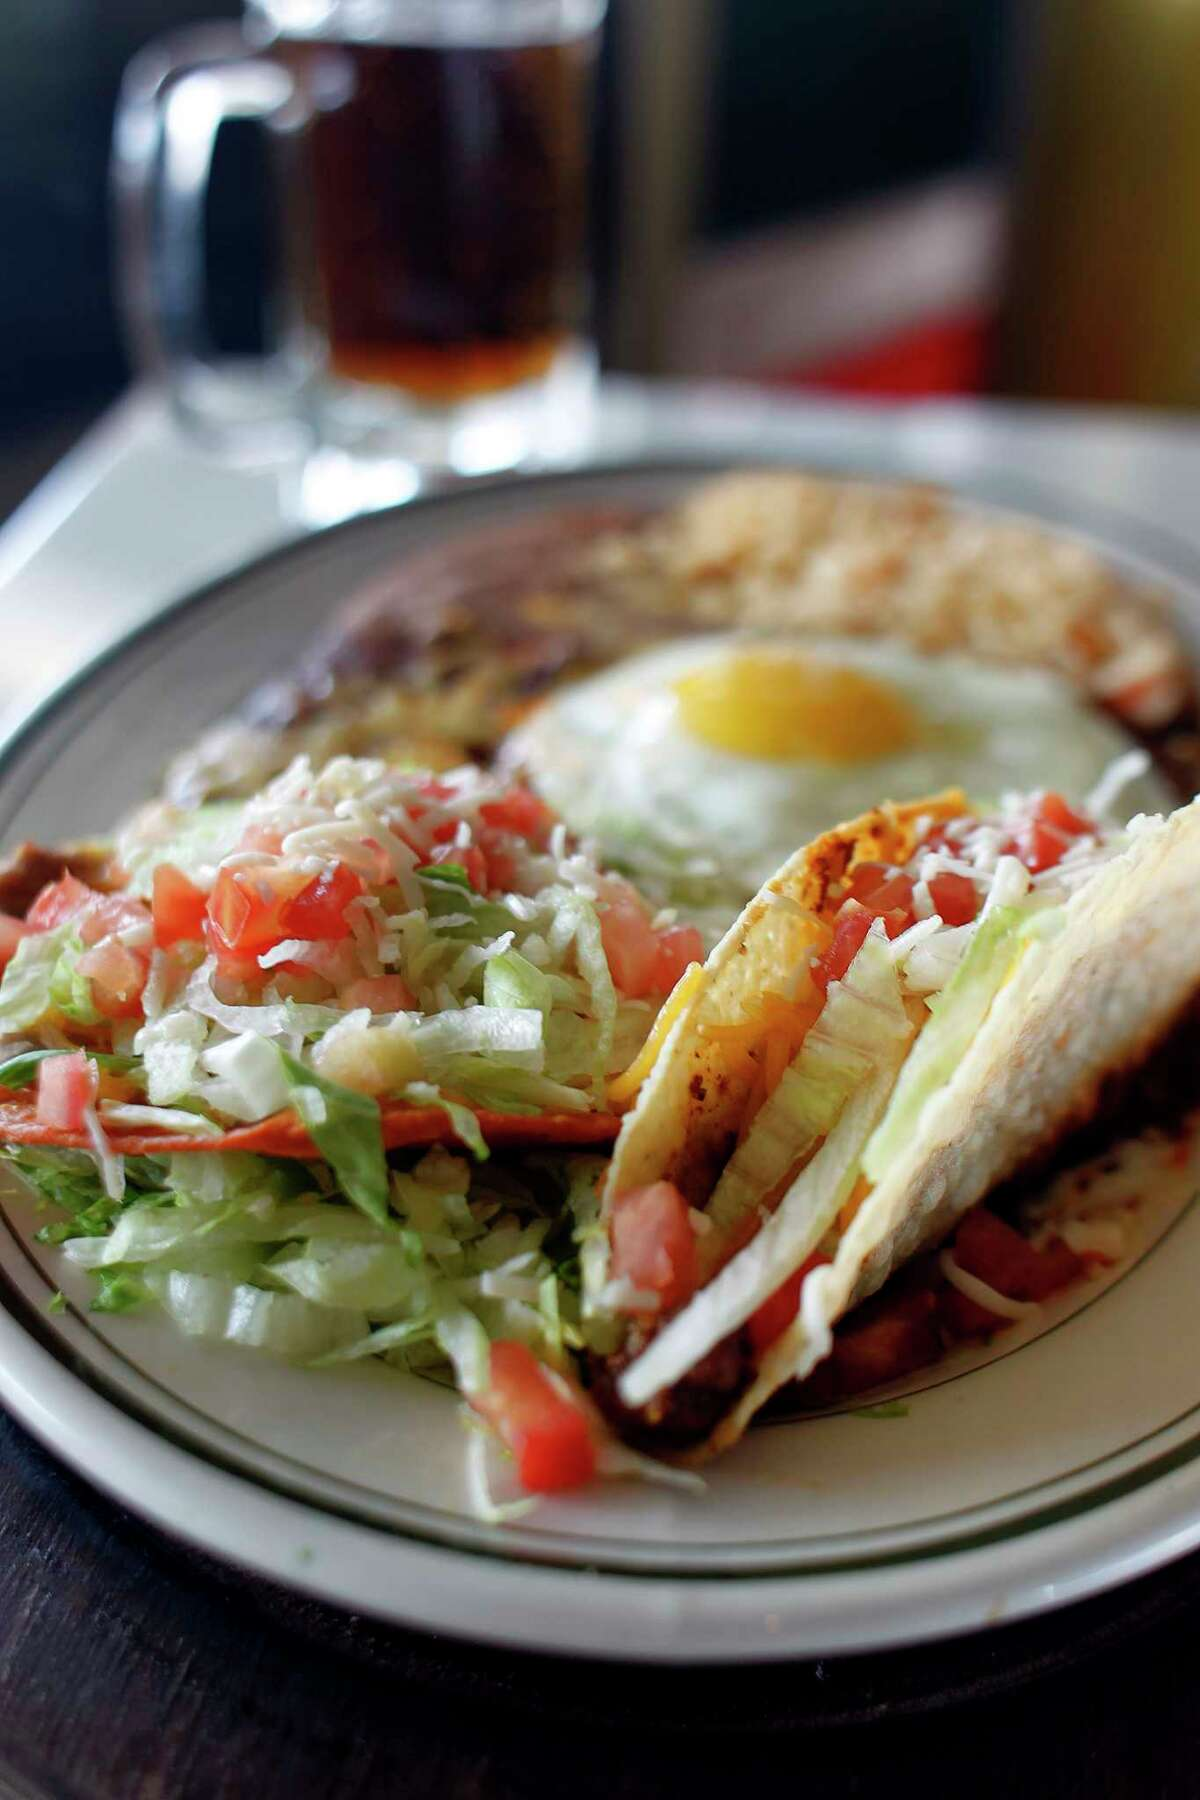 The Roosevelt Special, two cheese enchiladas with a fried egg, refried bean chalupa and a crispy beef taco at El Real Tex-Mex.